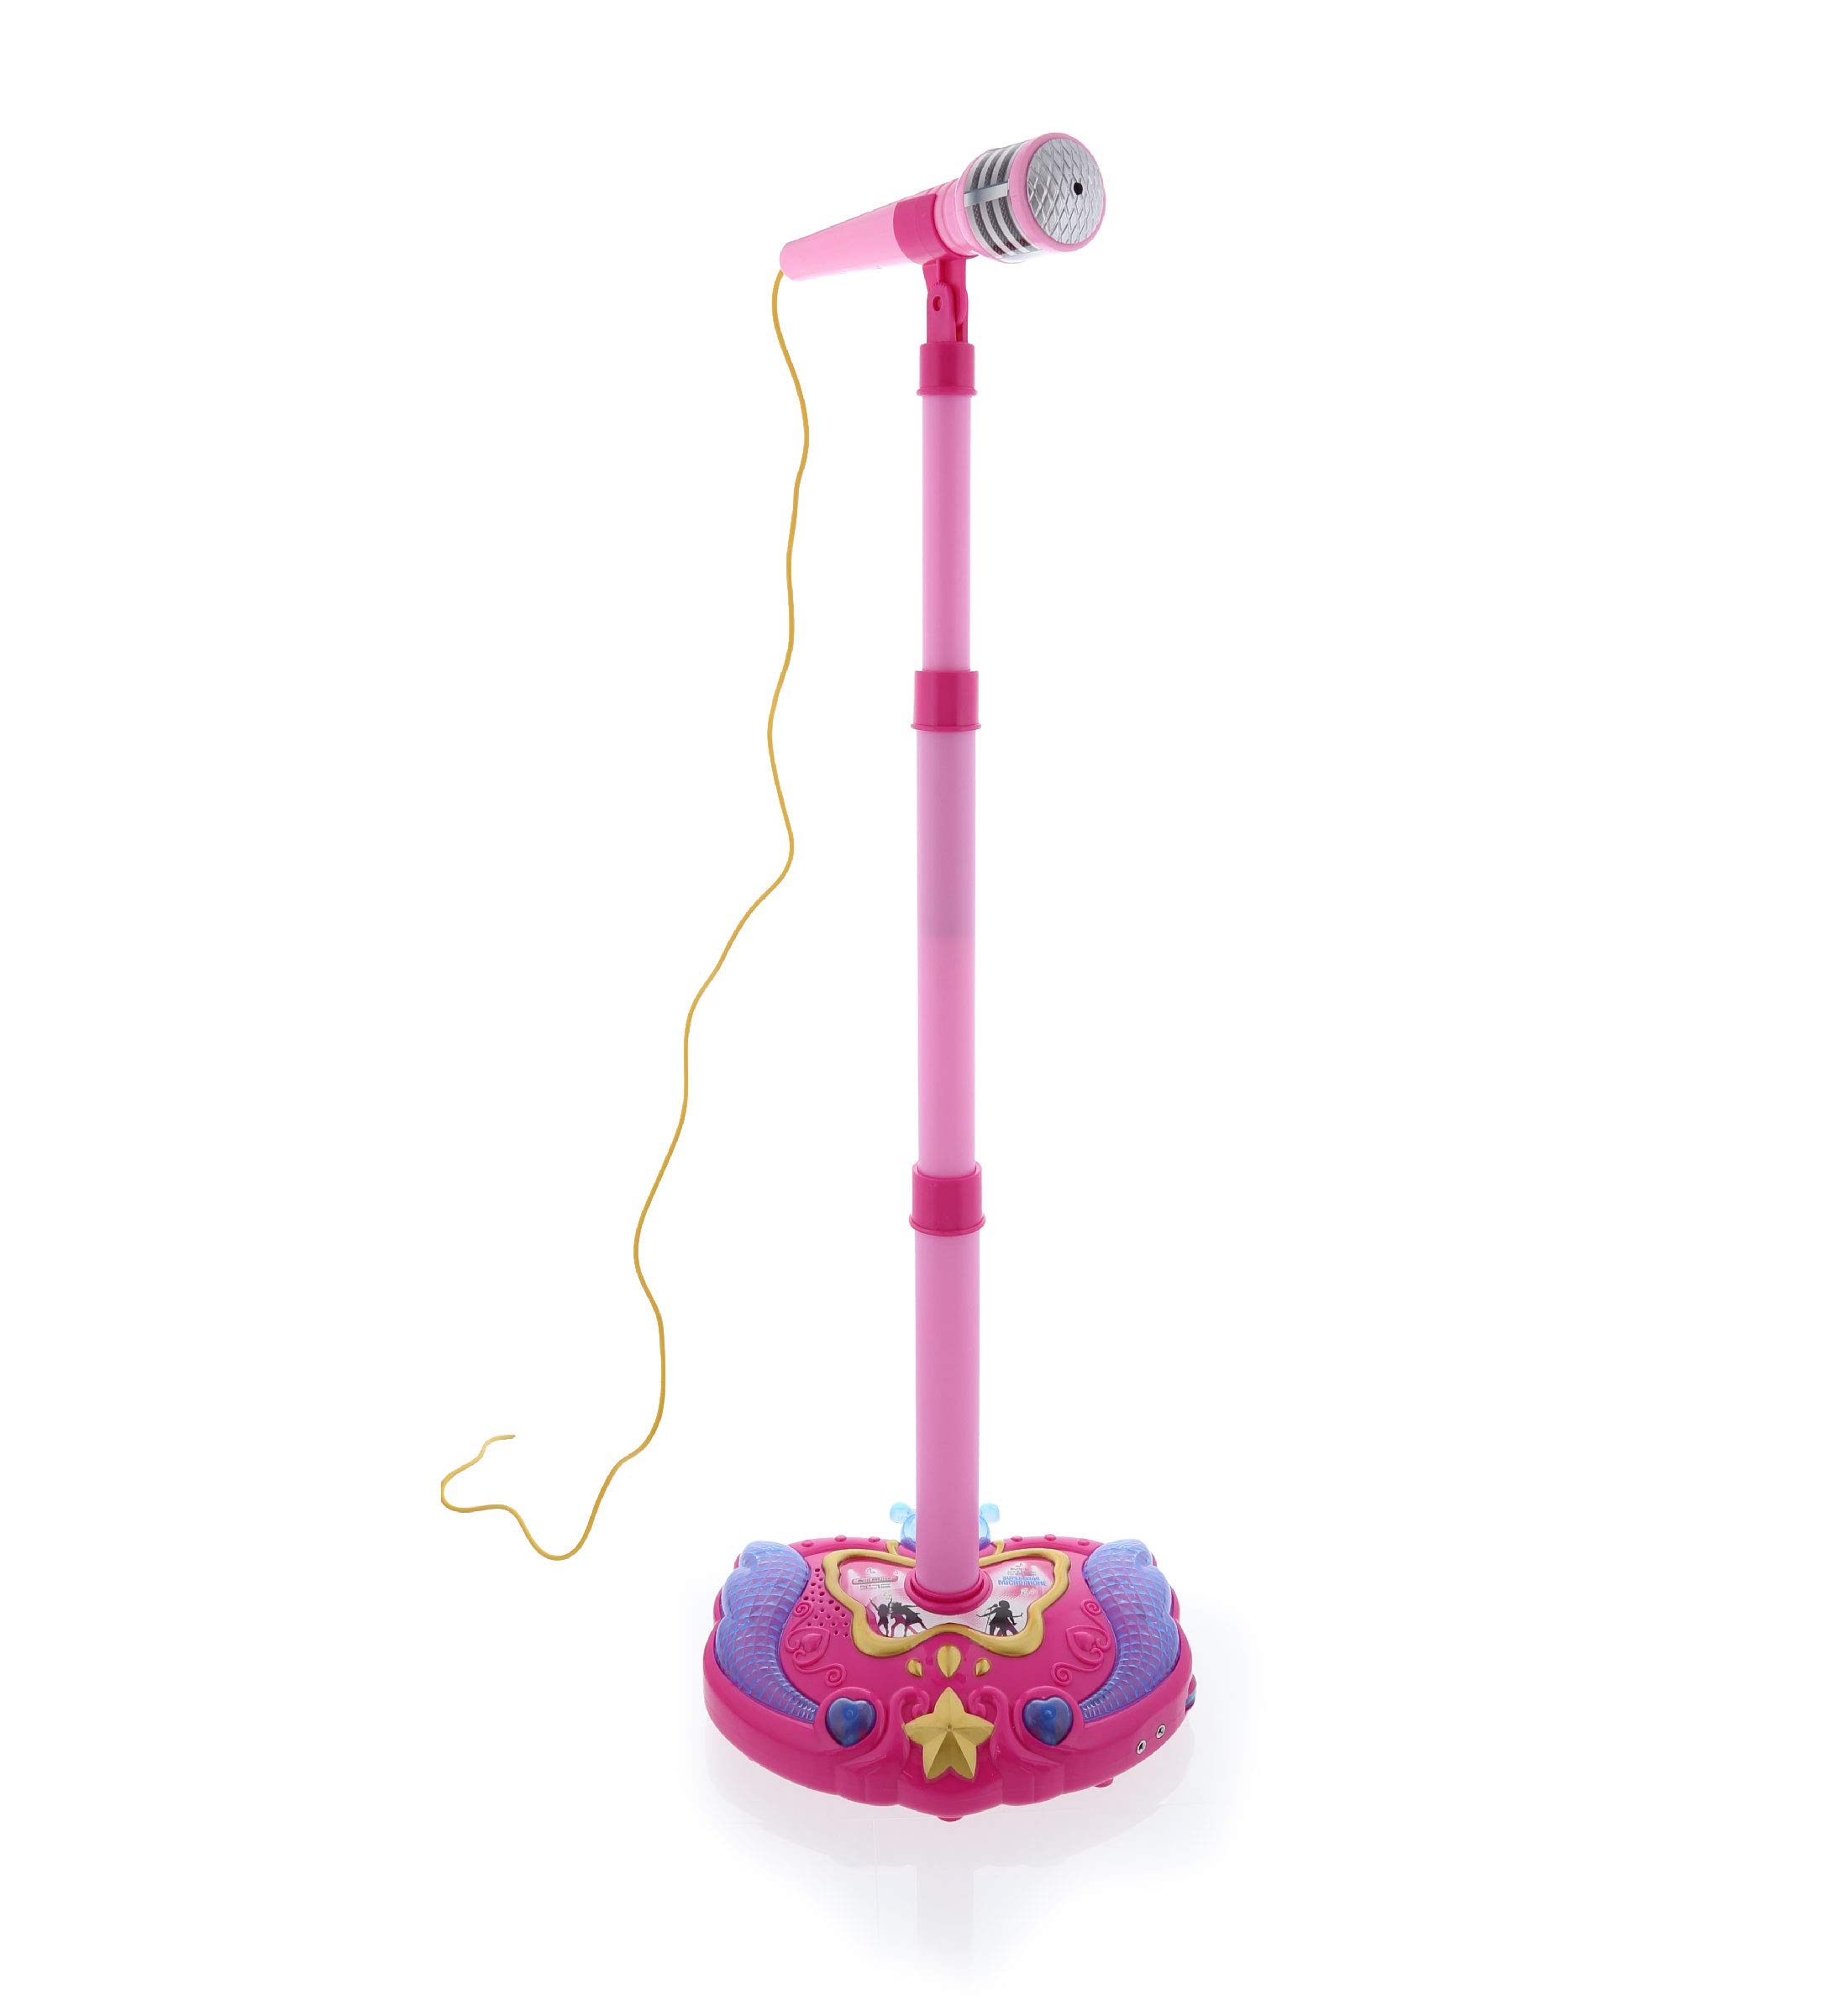 Mozlly Pink Light Up Karaoke Machine with Toy Microphone & Adjustable Stand, Connect to MP3 Player AUX Smart Phones for Solo Singing Parties Sing-A-Along Built in Speaker Flashing Lights for Kids by Mozlly (Image #1)